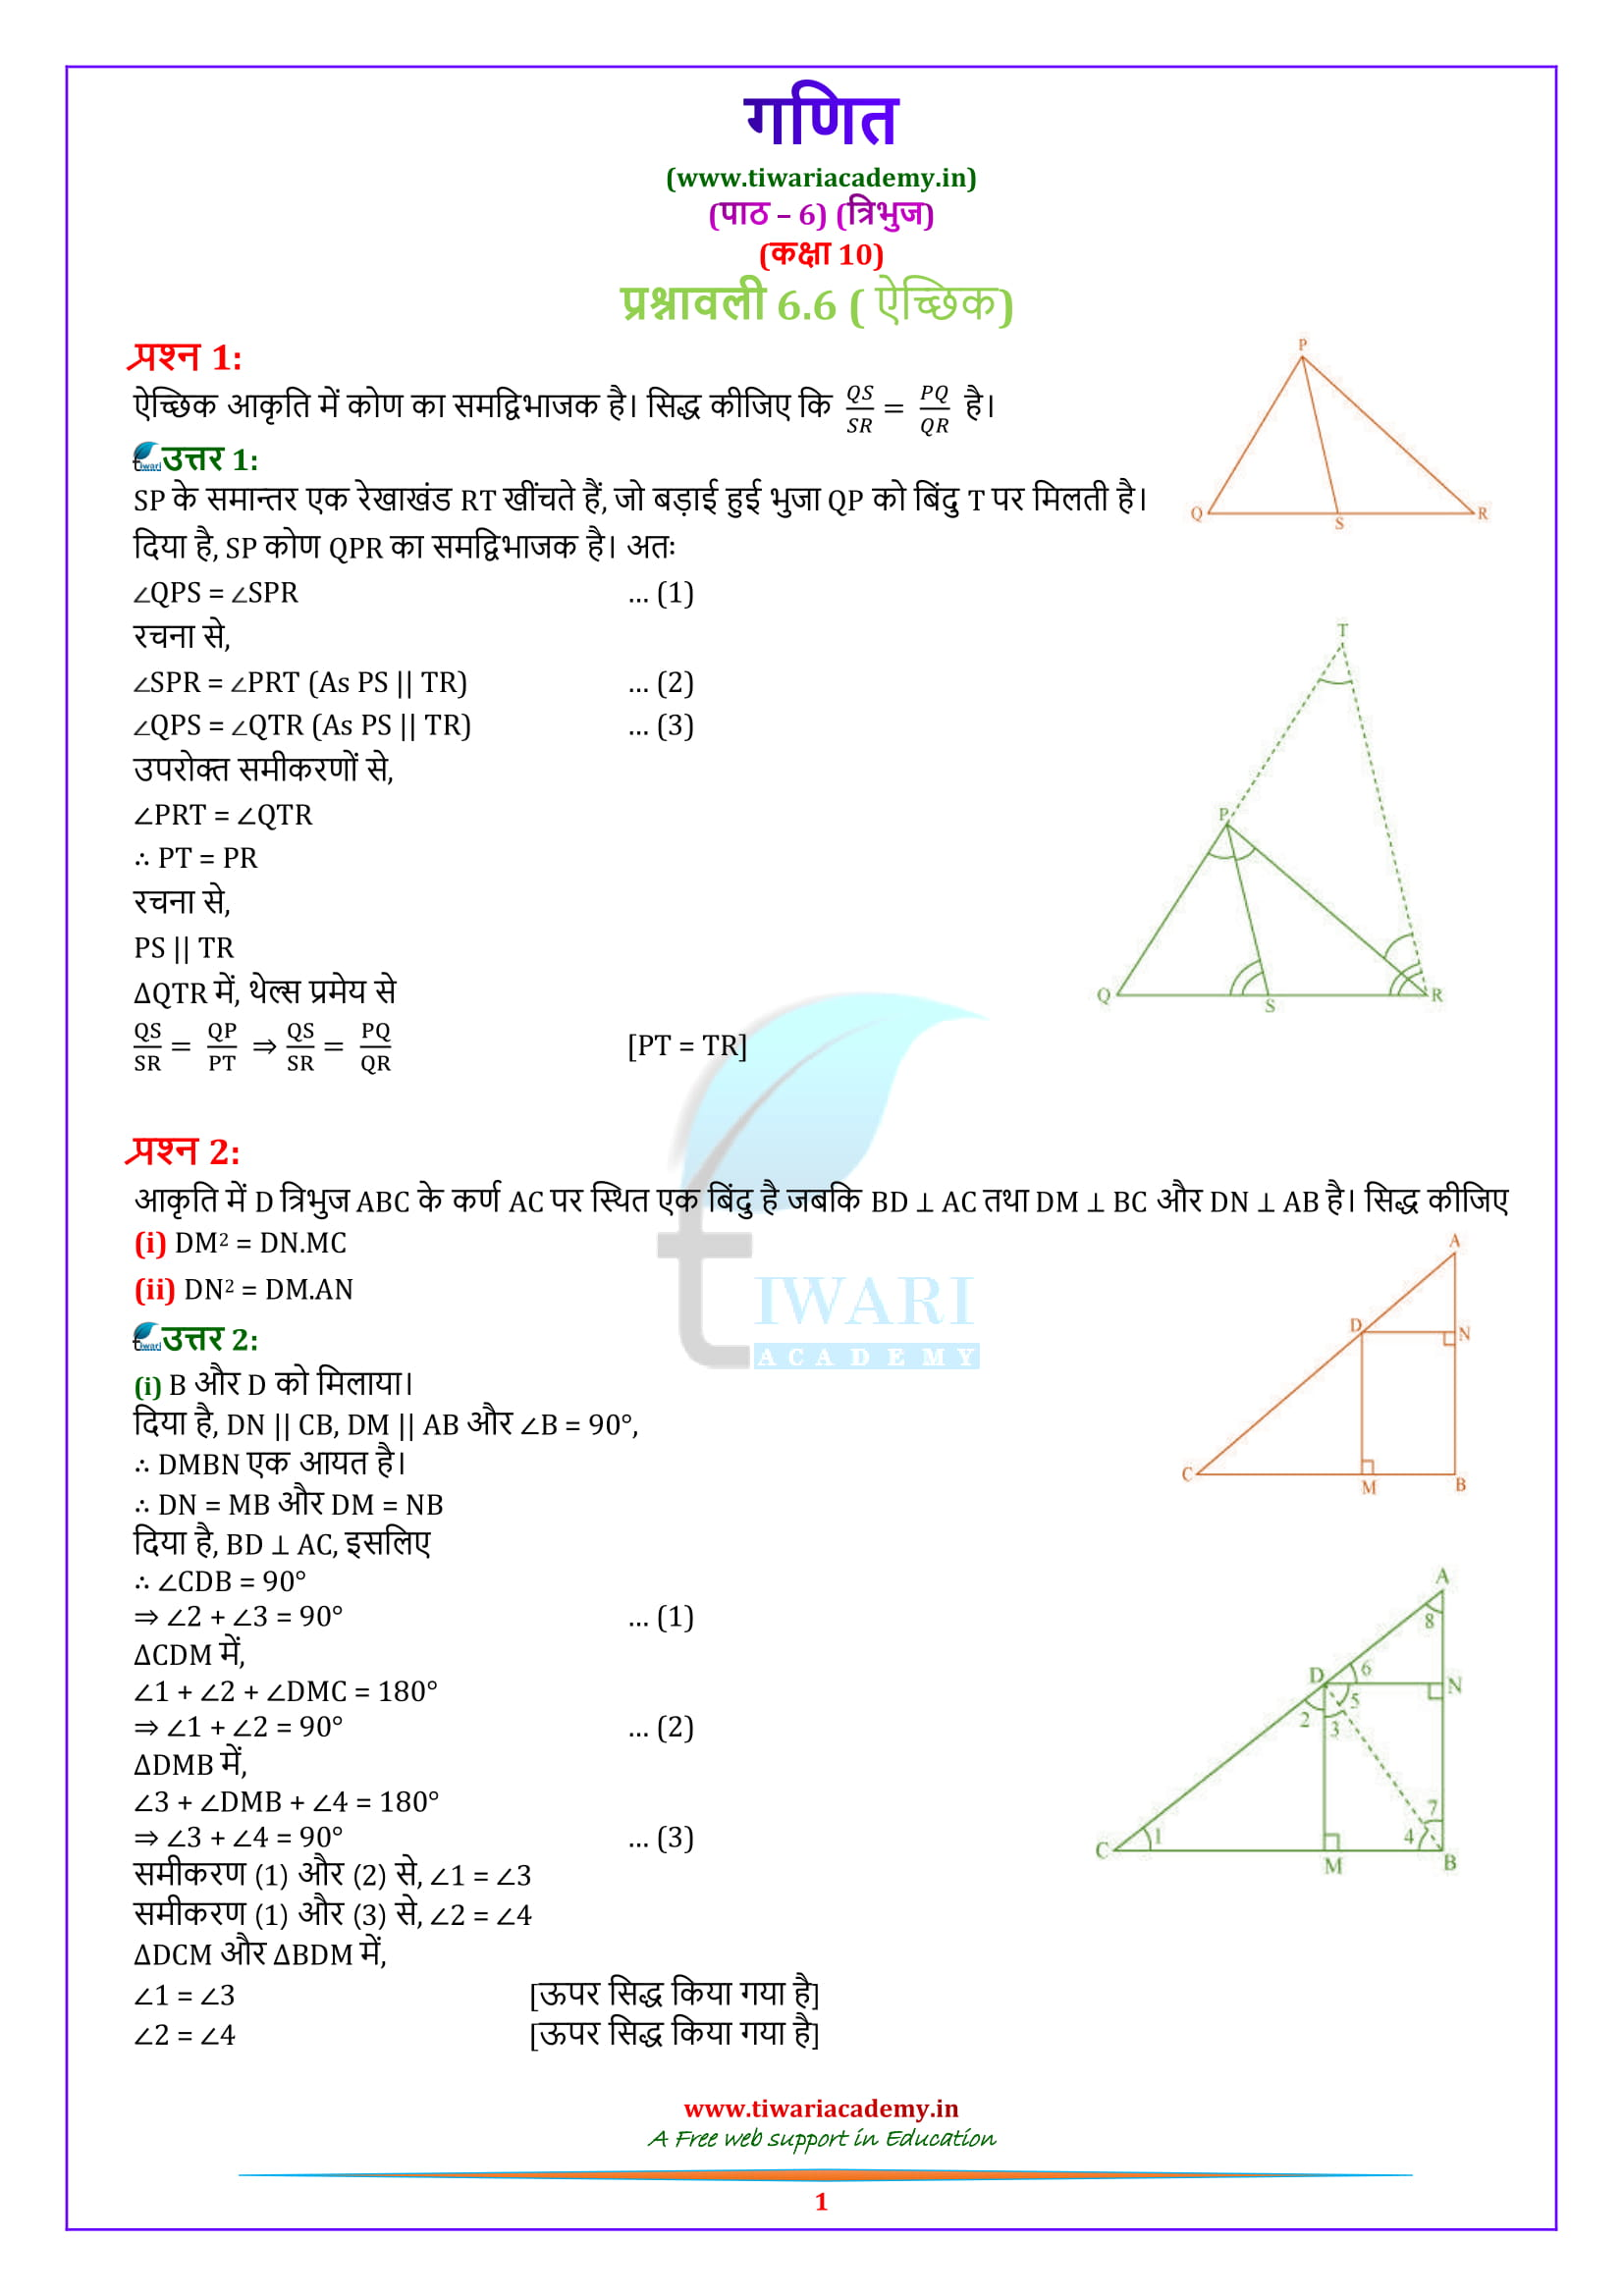 NCERT Solutions for 10 Maths Exercise 6.6 Question 1, 2, 3, 4, 5